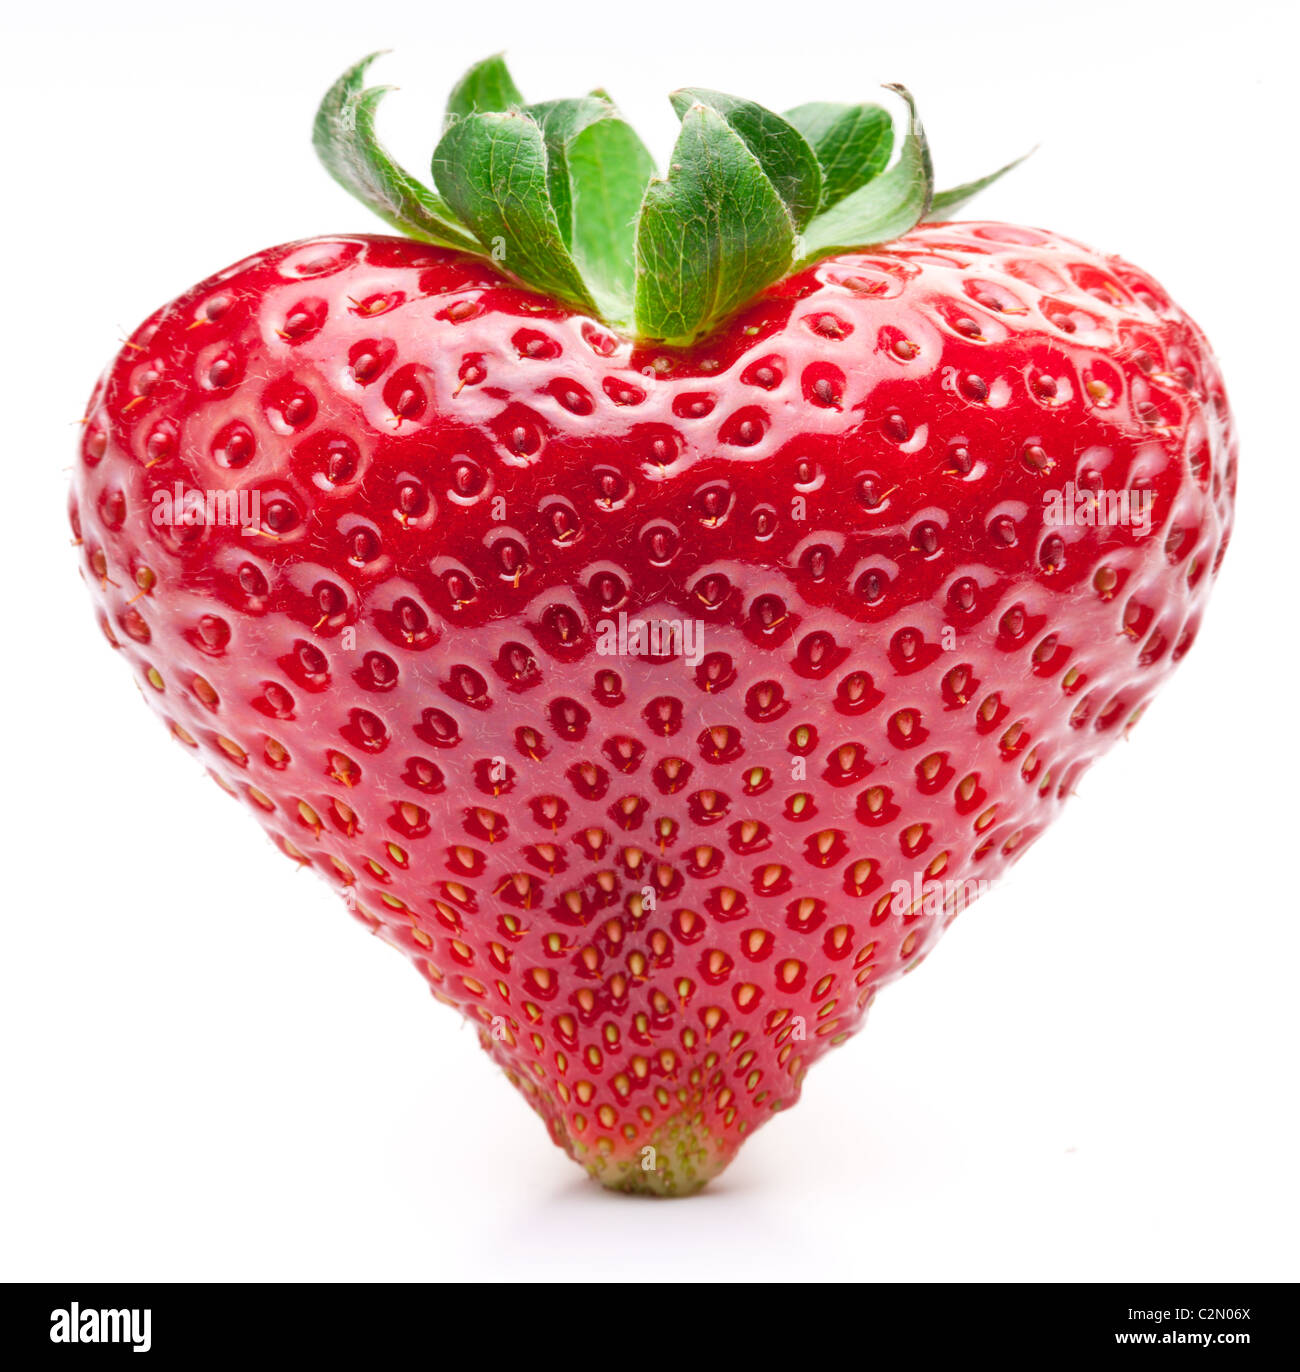 Strawberry heart. Isolated on a white background. - Stock Image